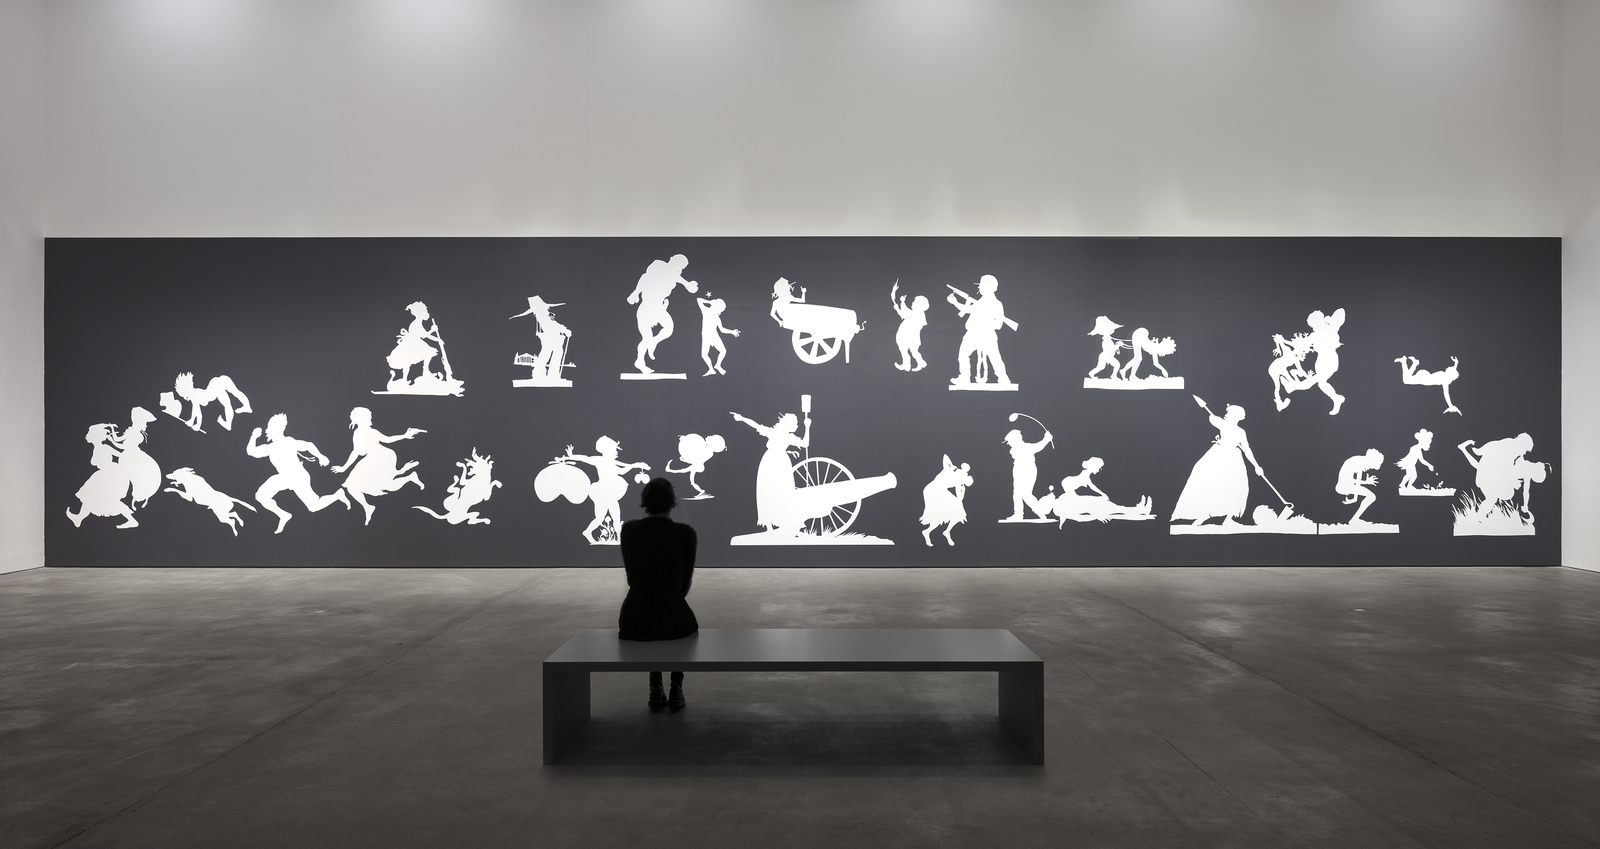 Image: Installation View, Kara Walker, THE SOVEREIGN CITIZENS SESQUICENTENNIAL CIVIL WAR CELEBRATION, 2013, Cut paper and adhesive on wall, approximately 470 x 2000 cm, 185 1/8 x 787 3/8 inches, Sprüth Magers, Berlin, 2020 Photography Timo Ohler Courtesy Sprüth Magers and Sikkema Jenkins & Co.